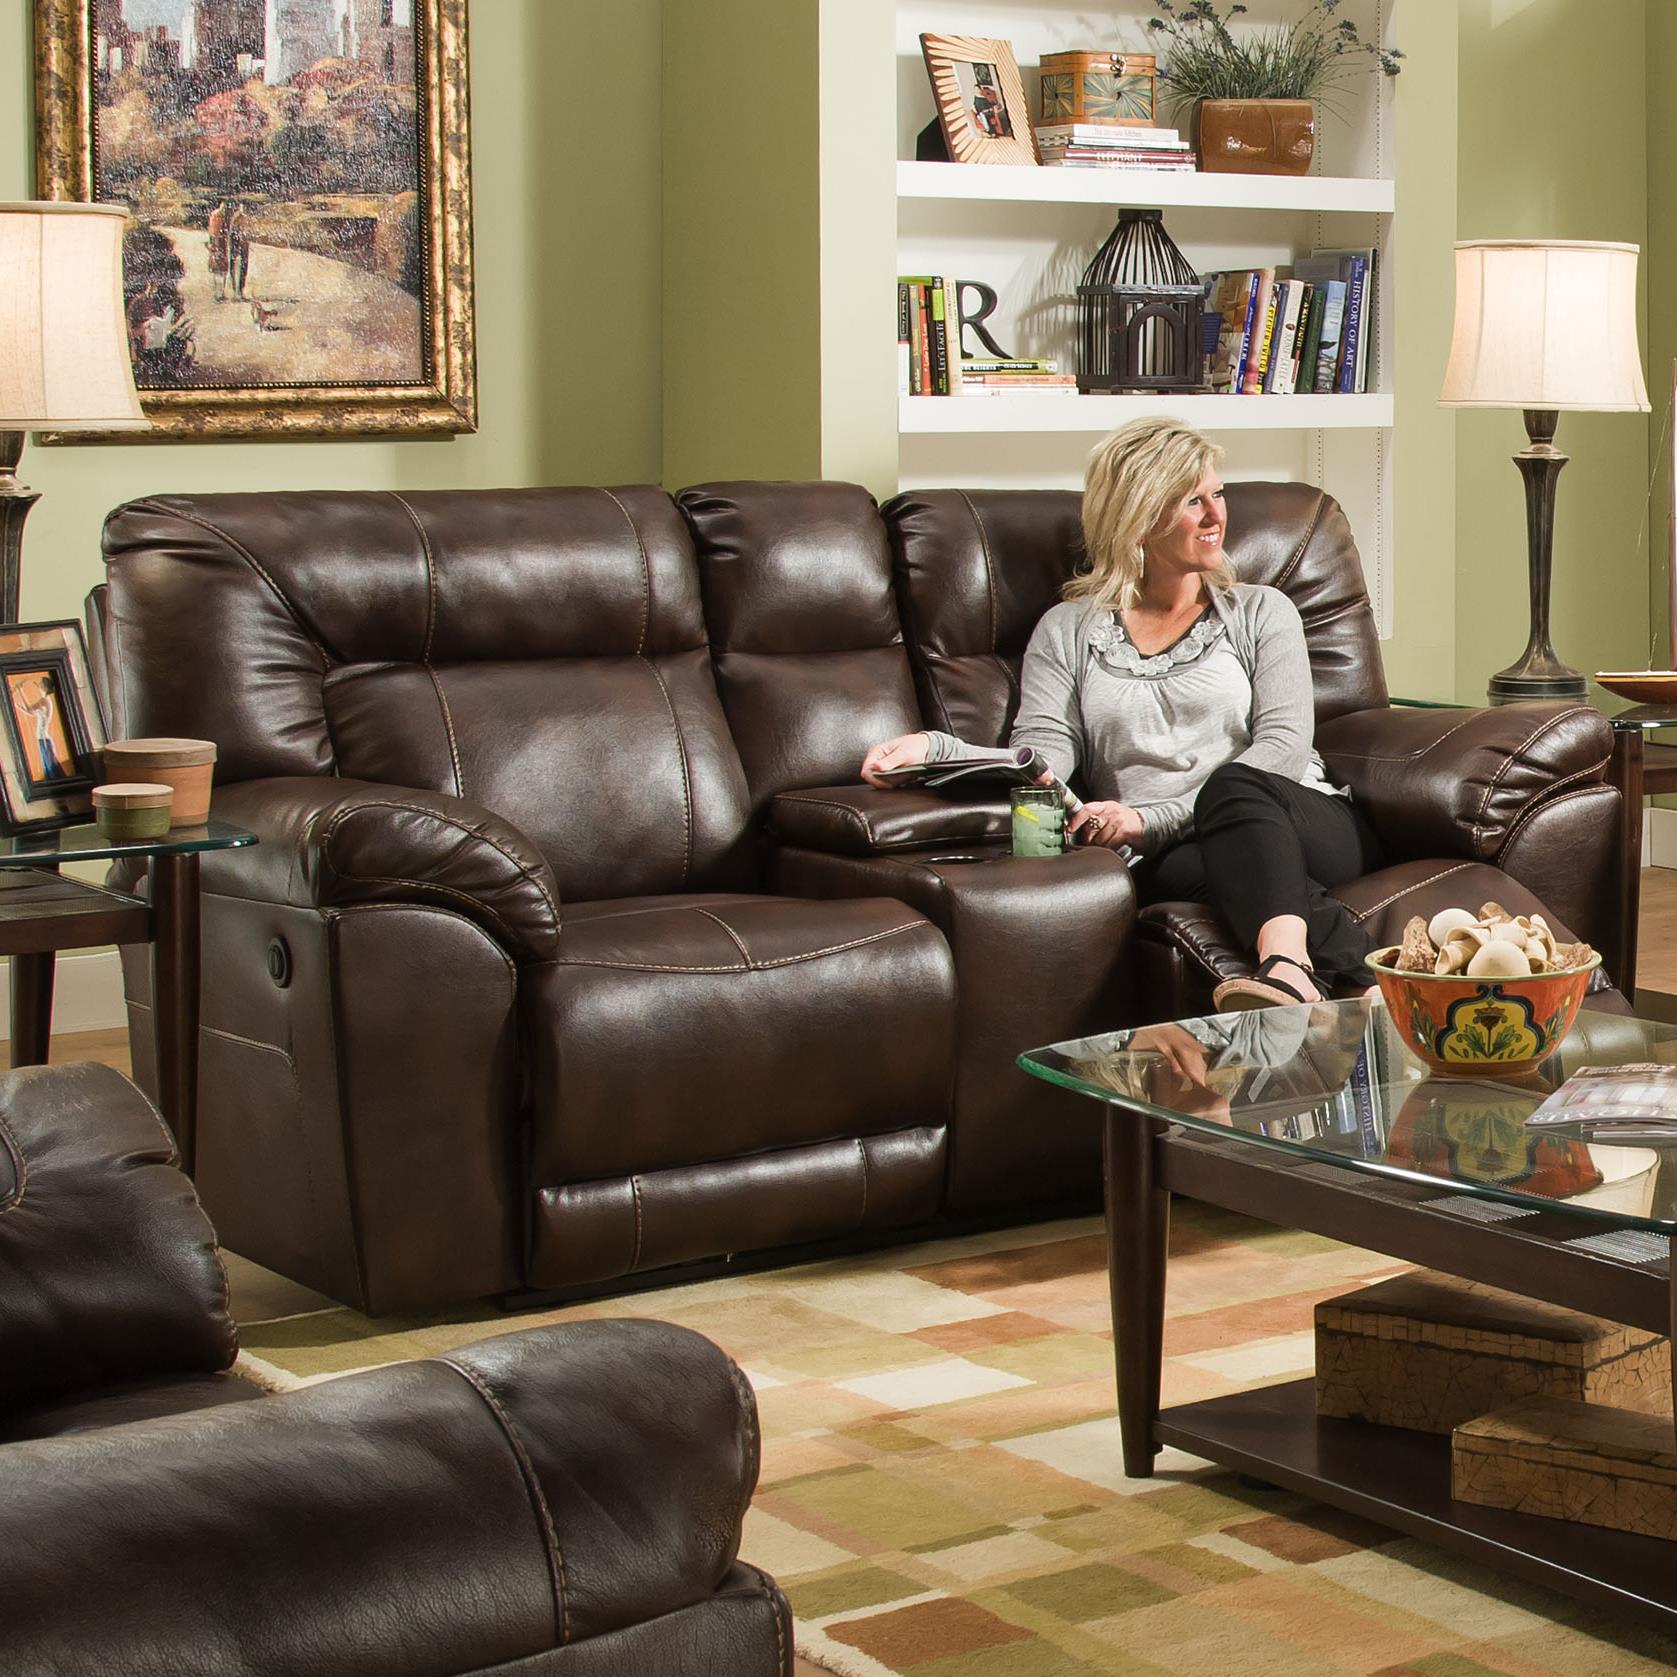 Double Motion Loveseat with Console